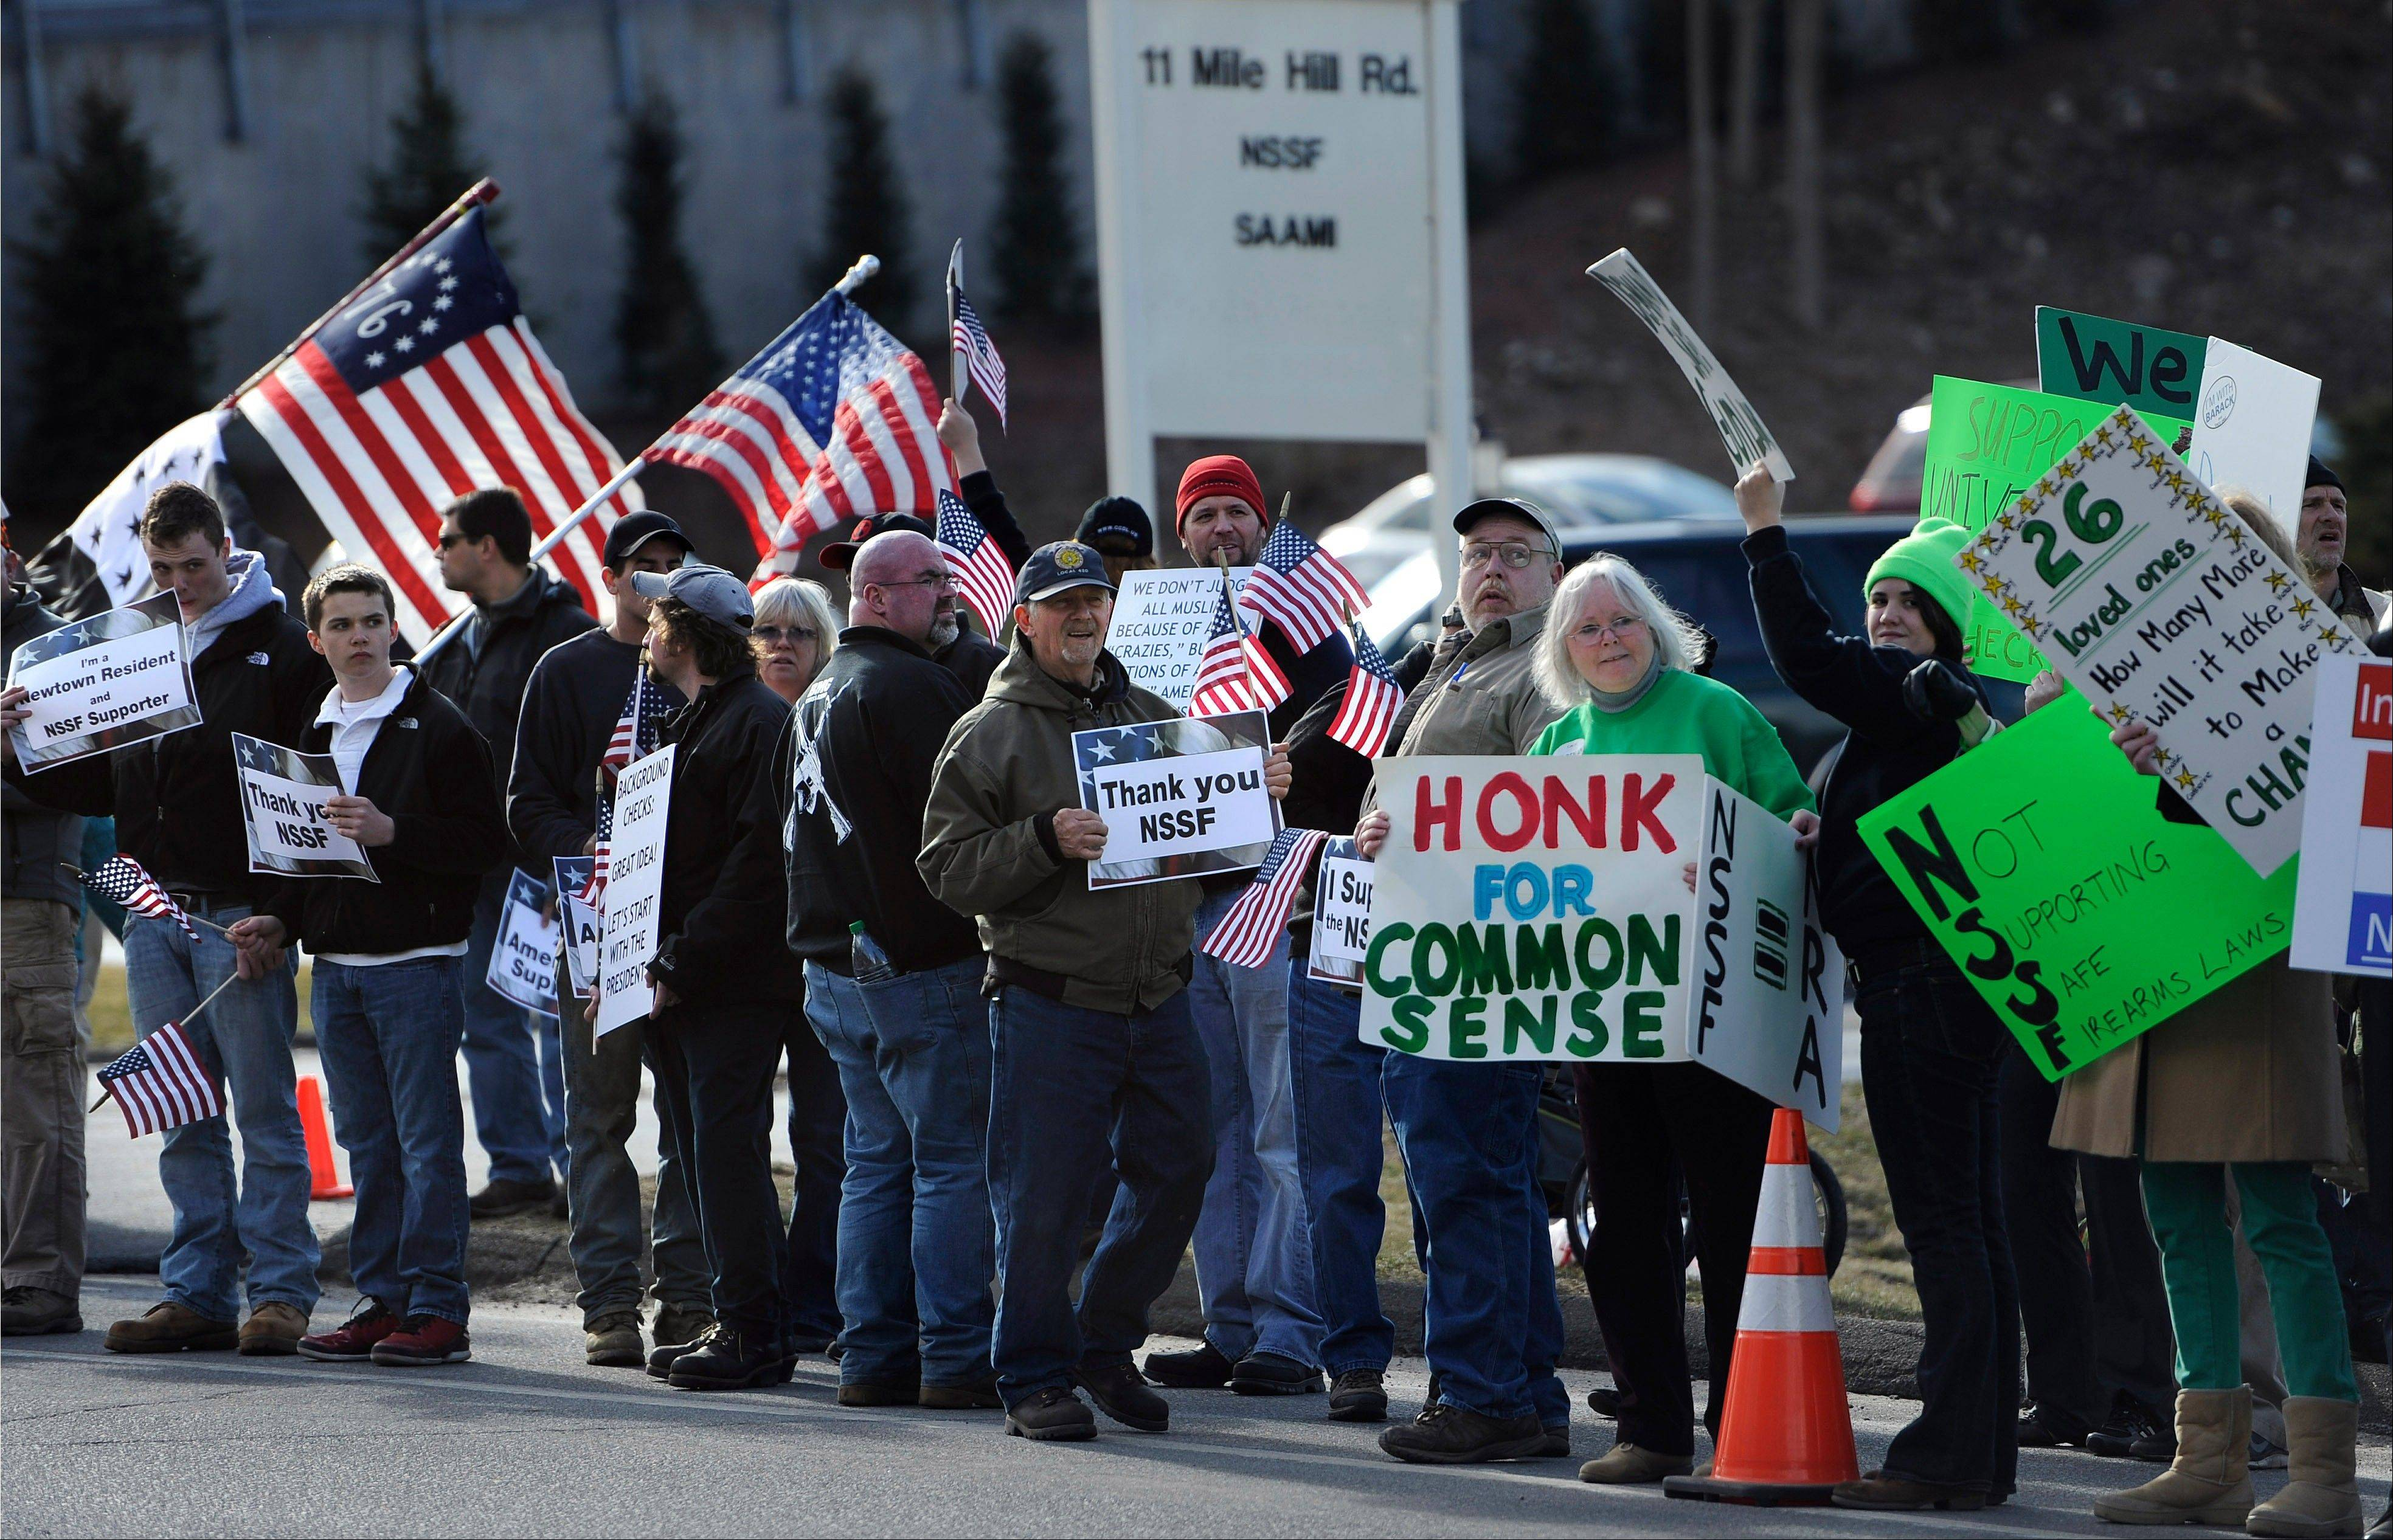 Supporters of both sides of the gun debate gather outside the National Shooting Sports Foundation headquarters Thursday in Newtown, Conn.